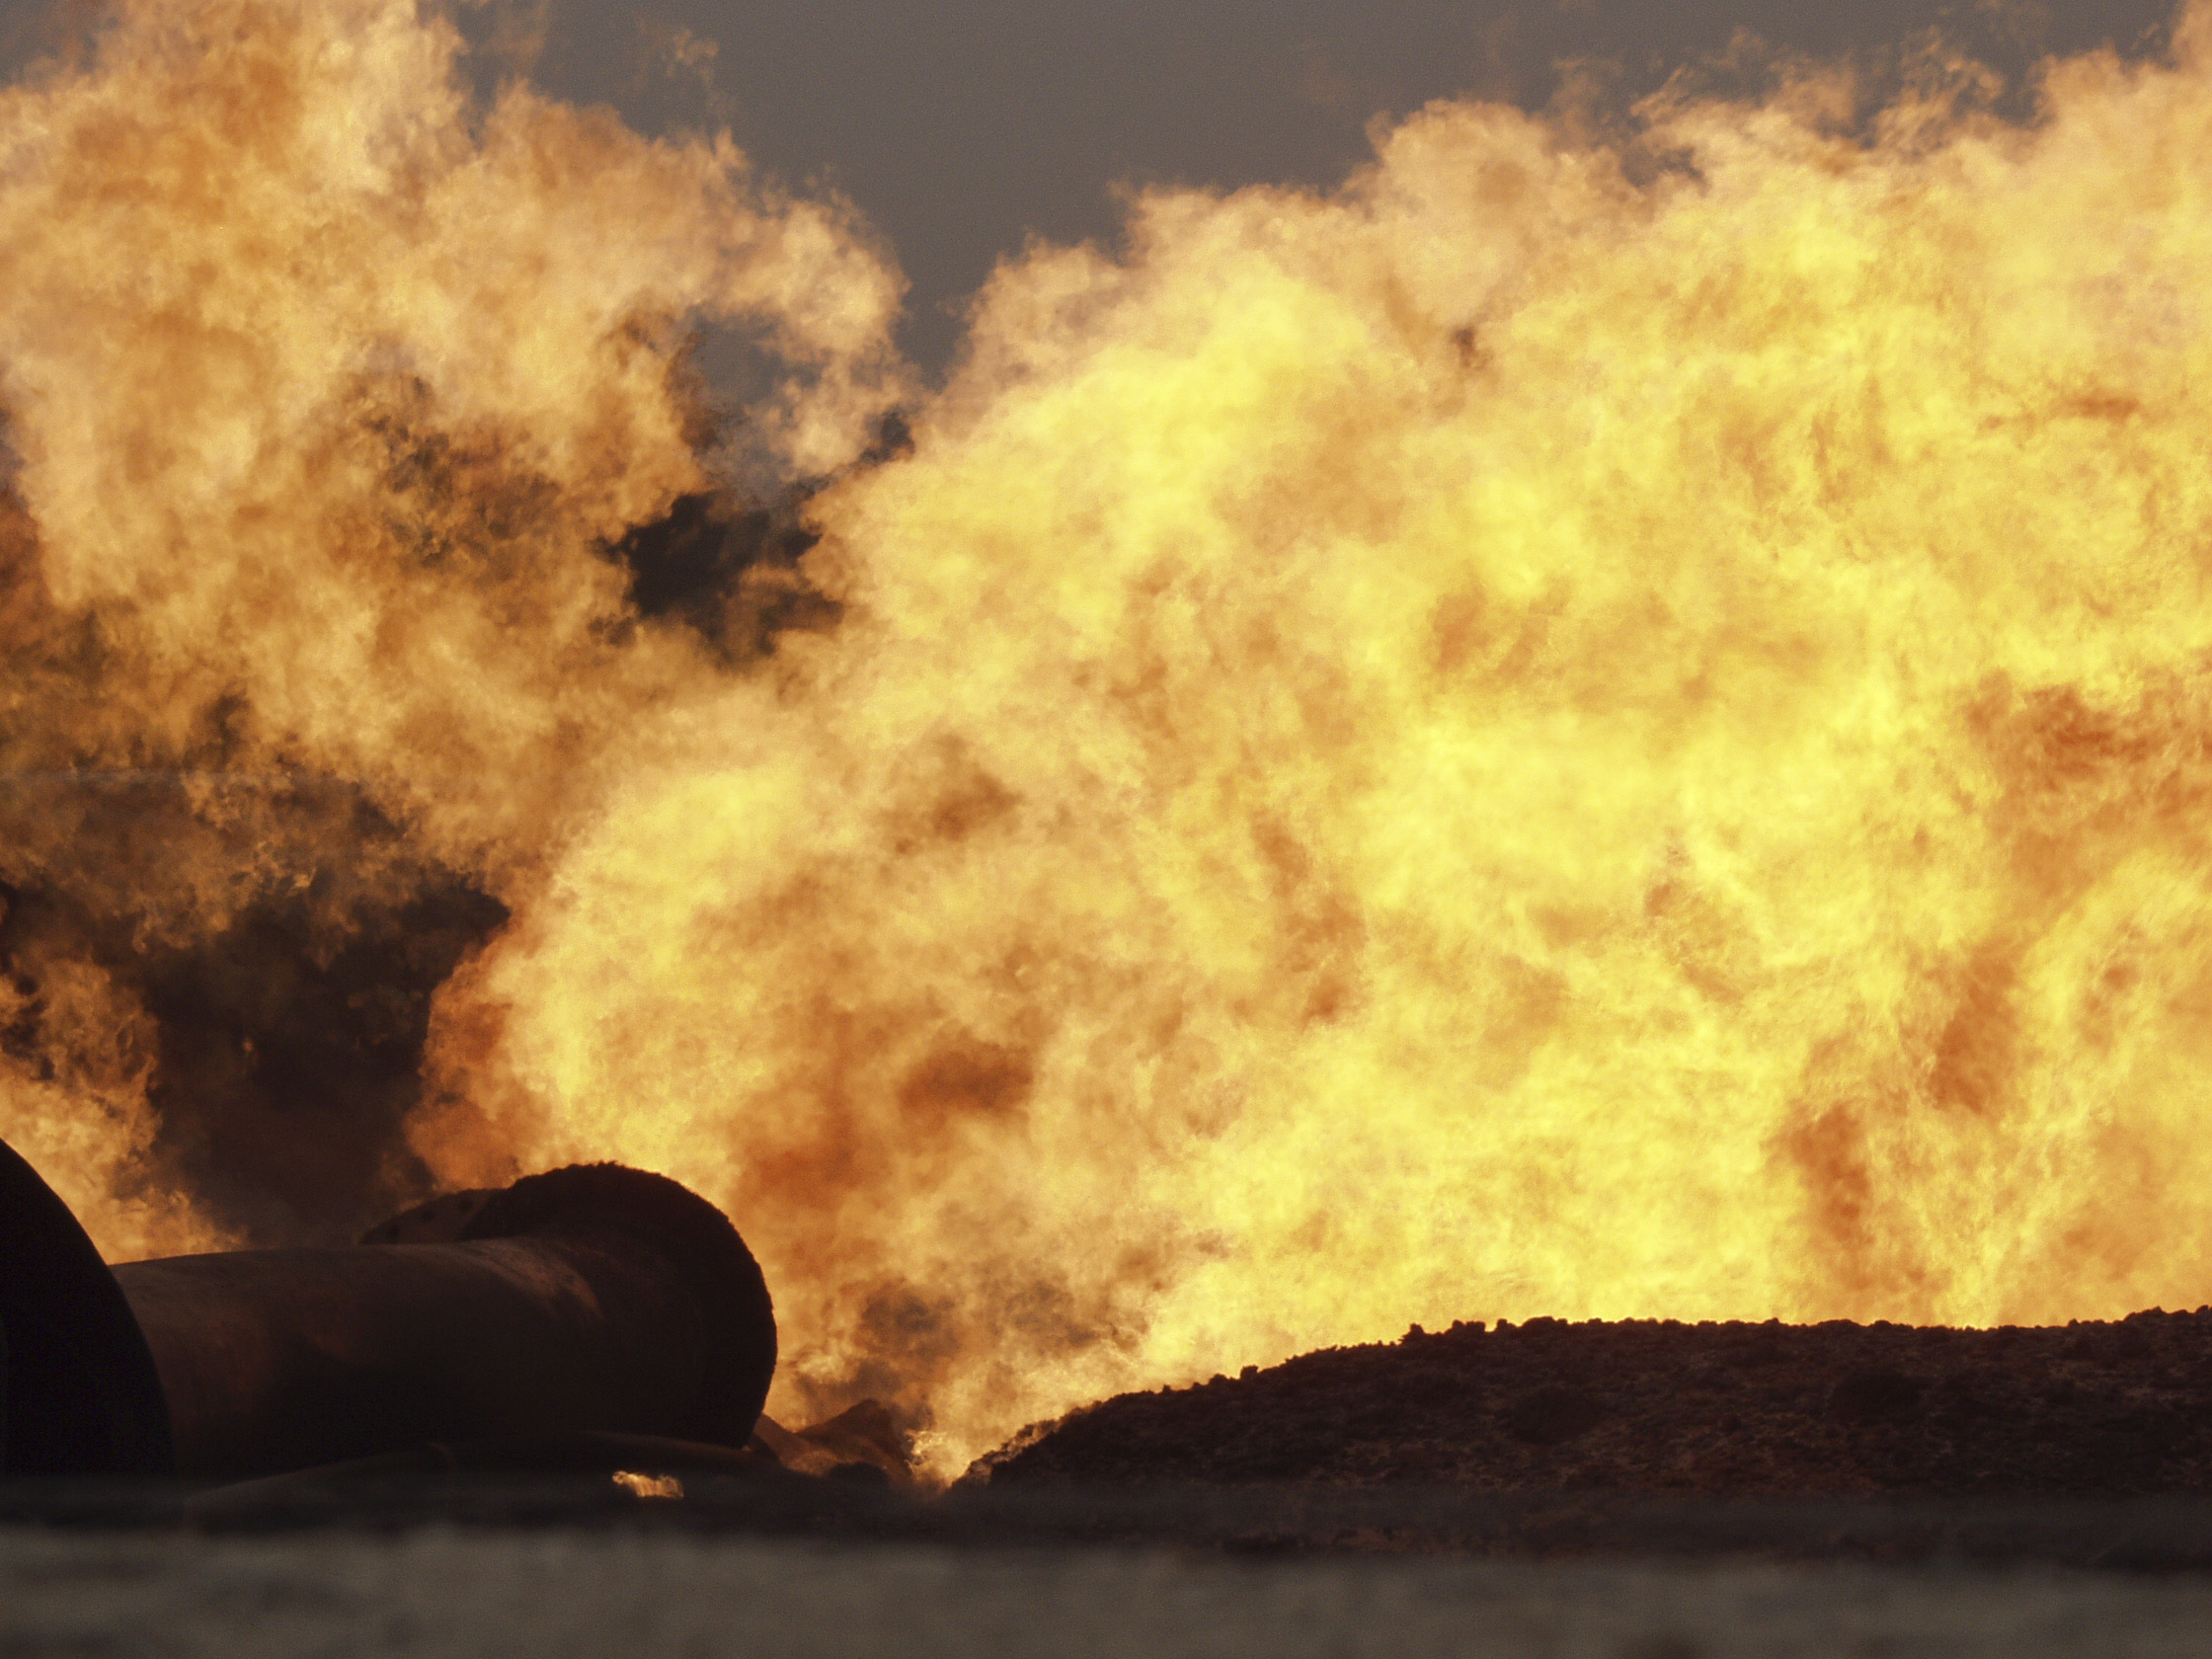 Shell gas flare at Rumuekpe, River State, Niger Delta. © Peter Roderick, March 2004